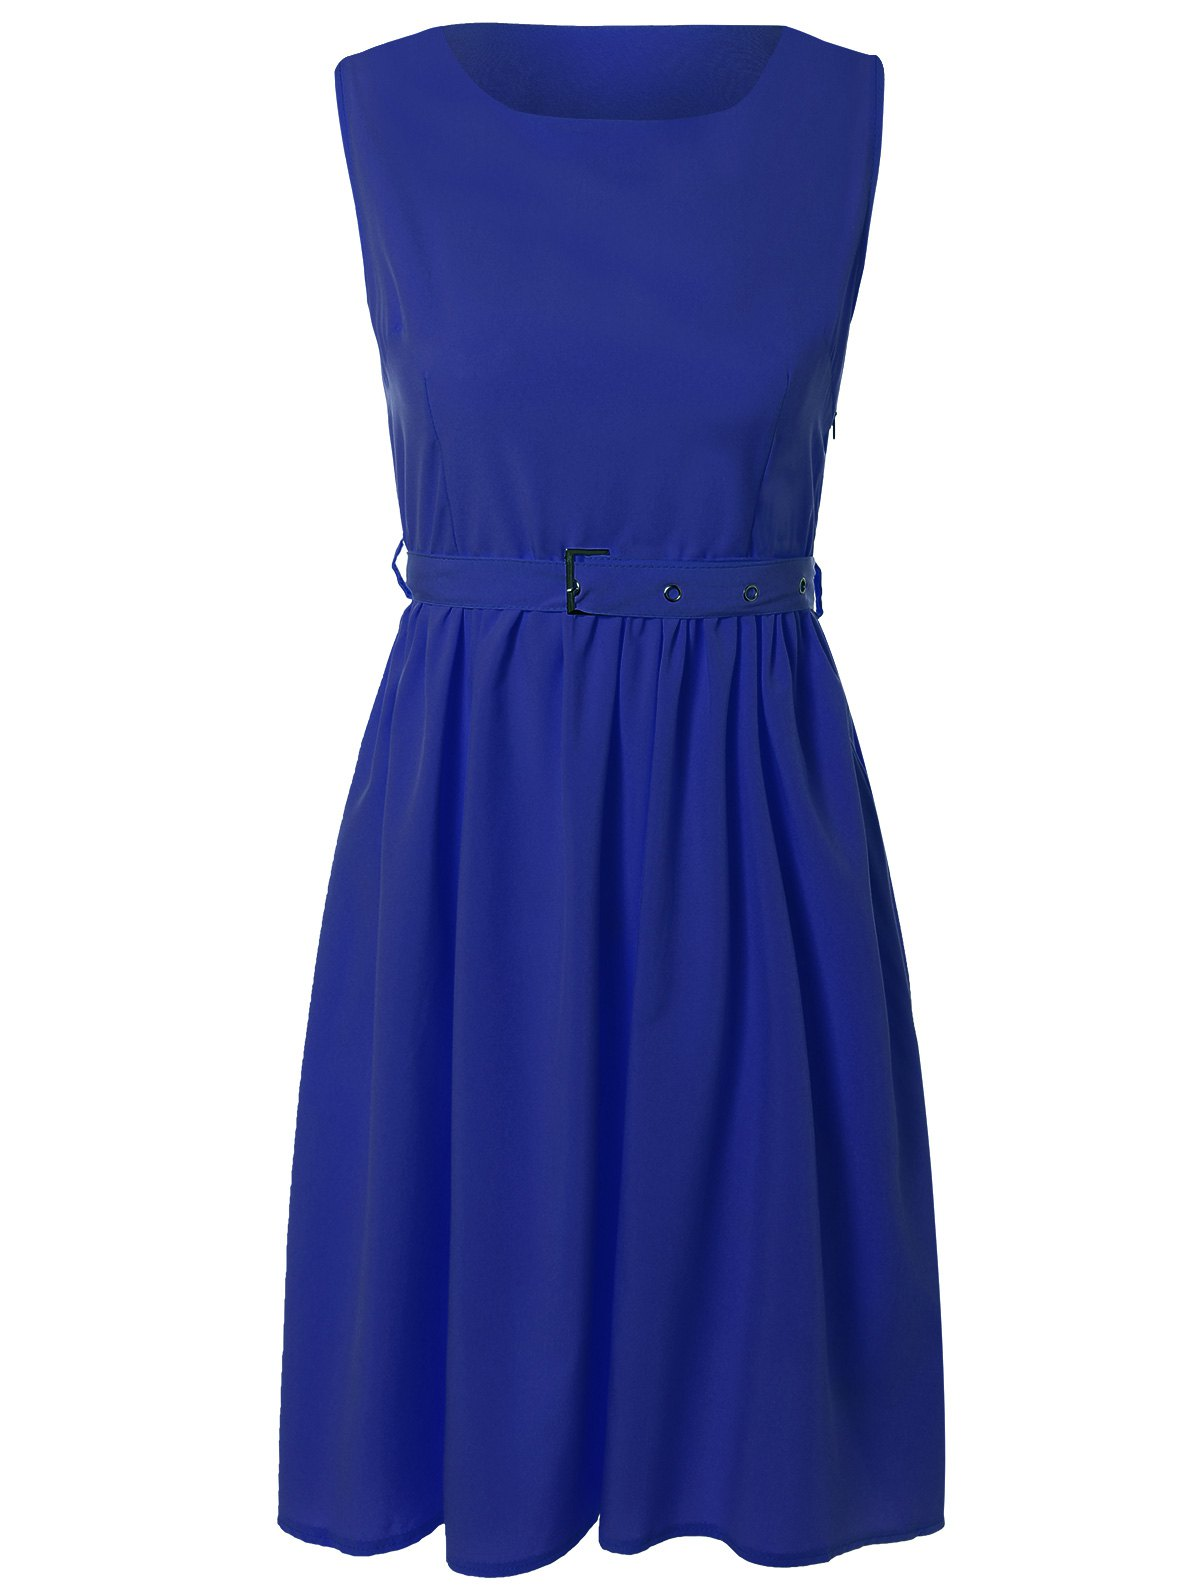 Vintage Belted A-Line Dress - BLUE M